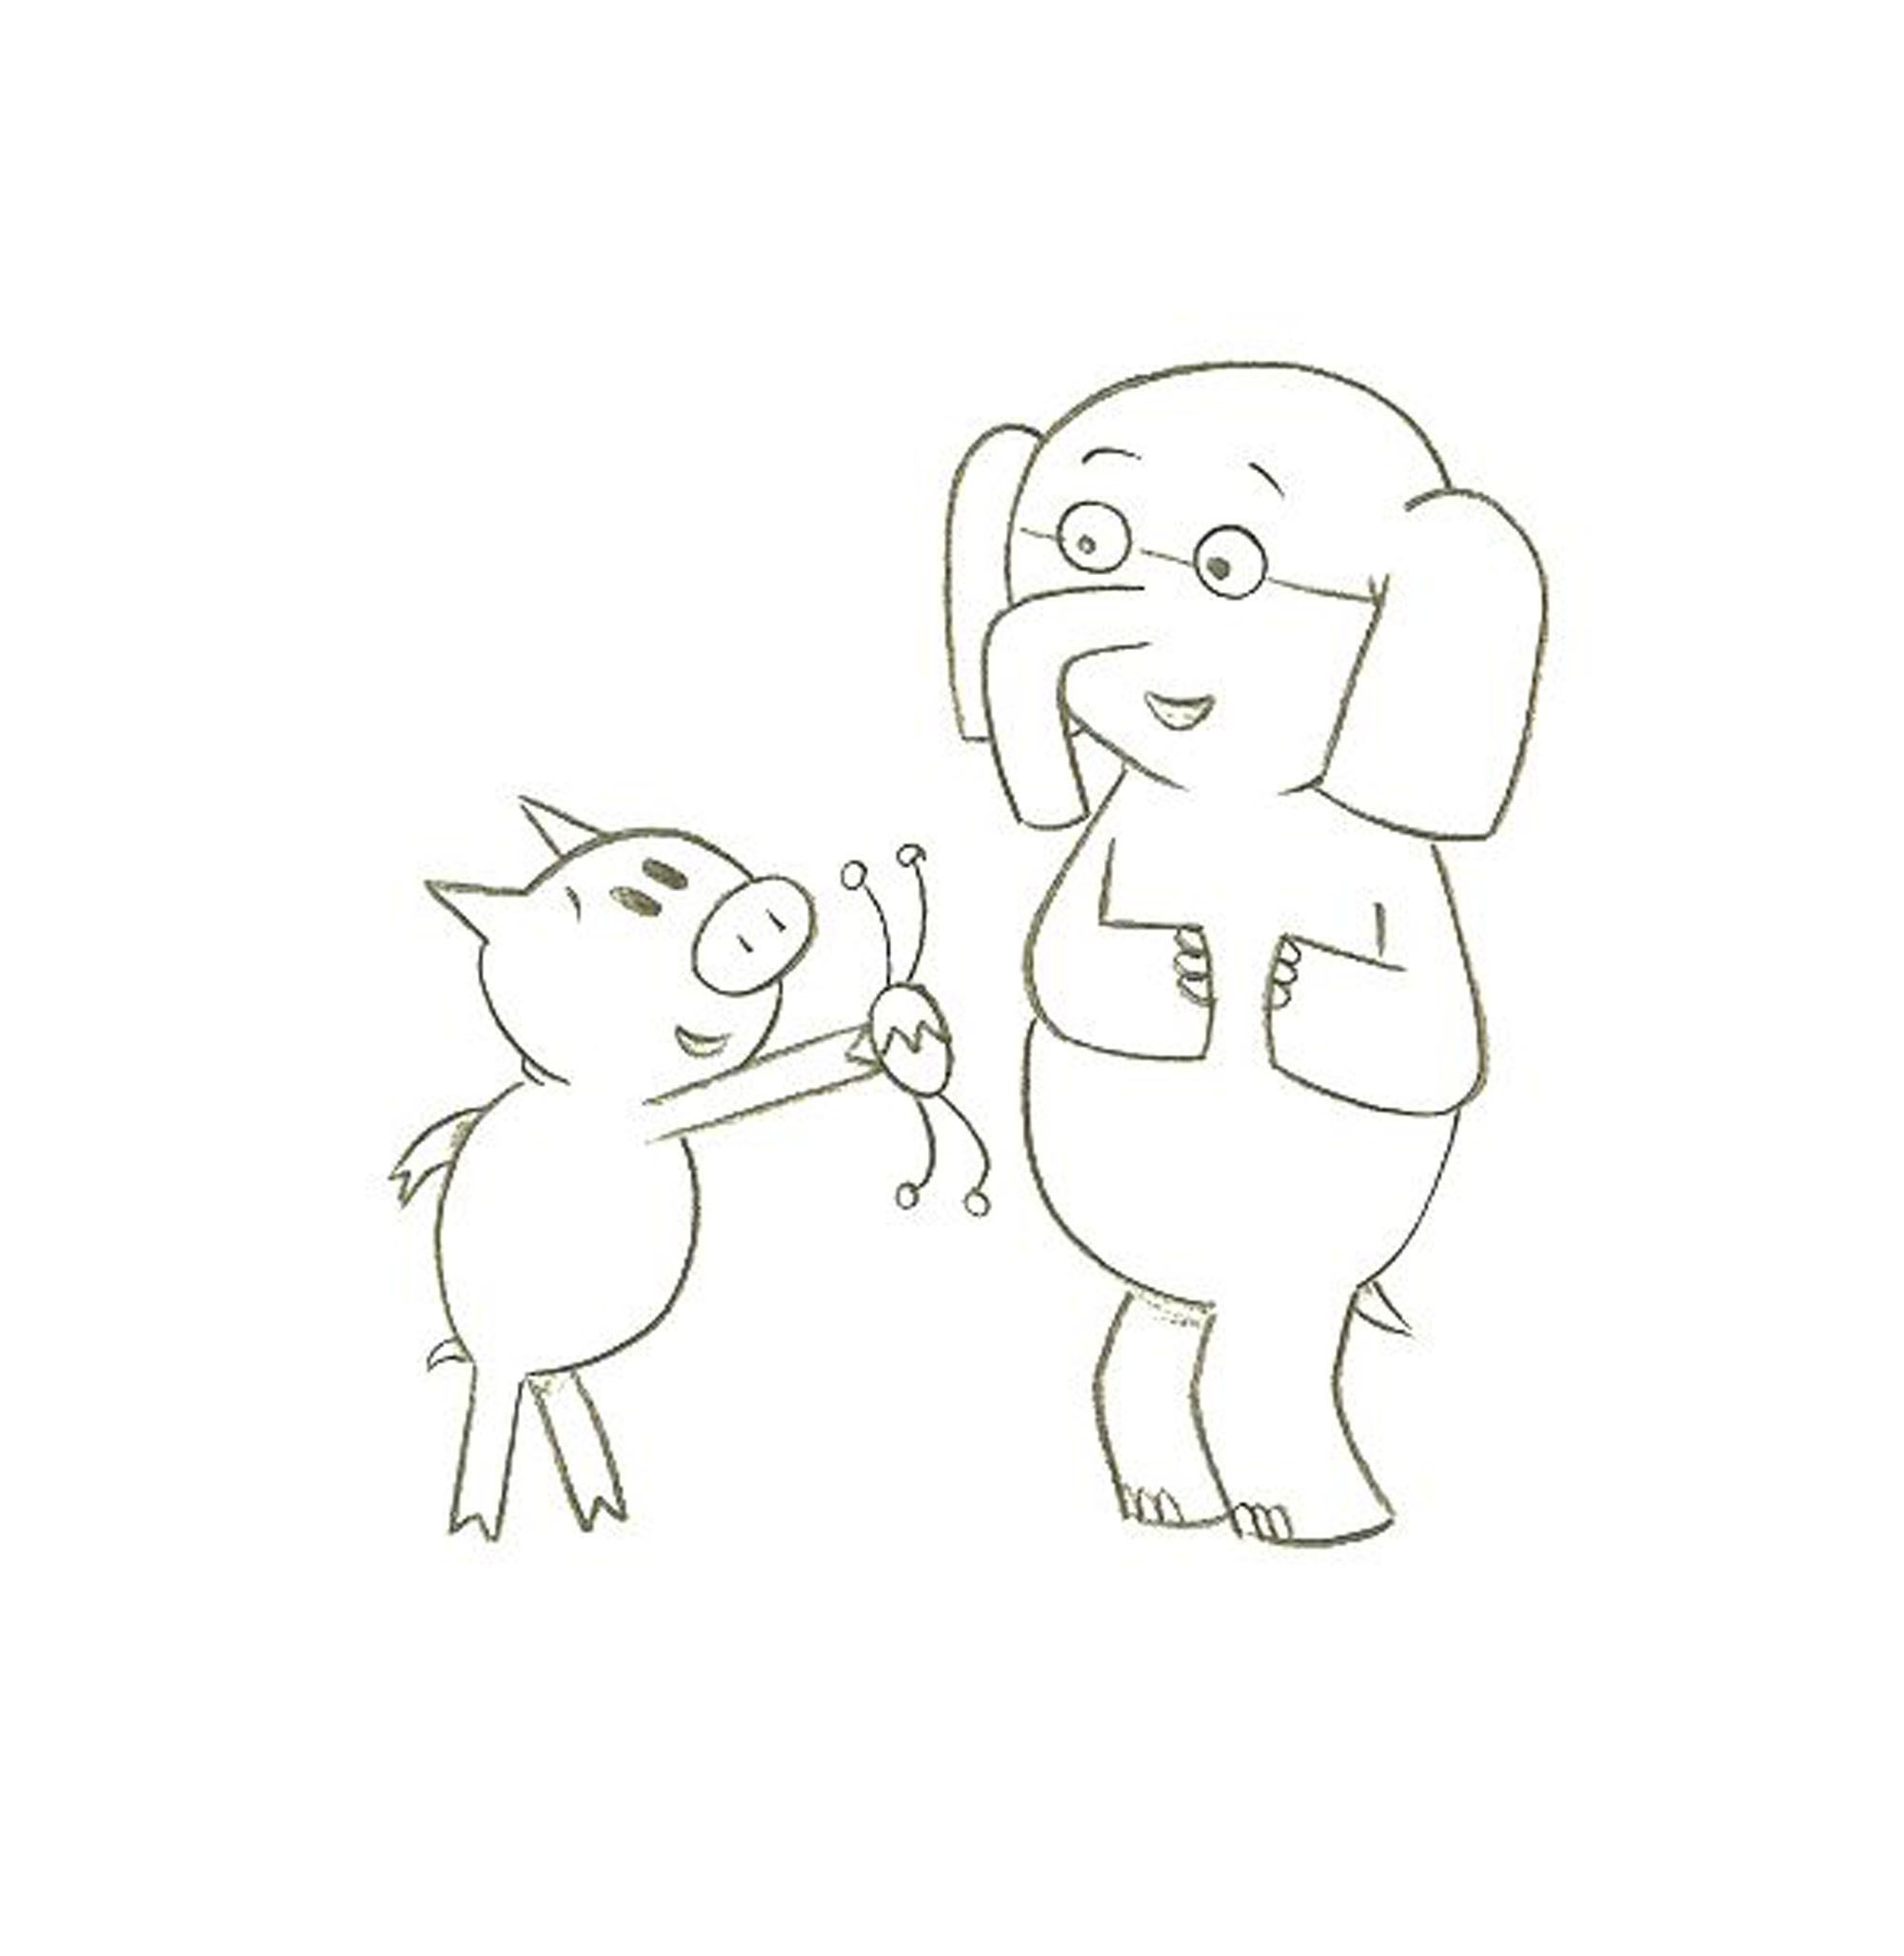 Elephant And Piggie Coloring Page Elephant Coloring Page Puppy Coloring Pages Coloring Pages